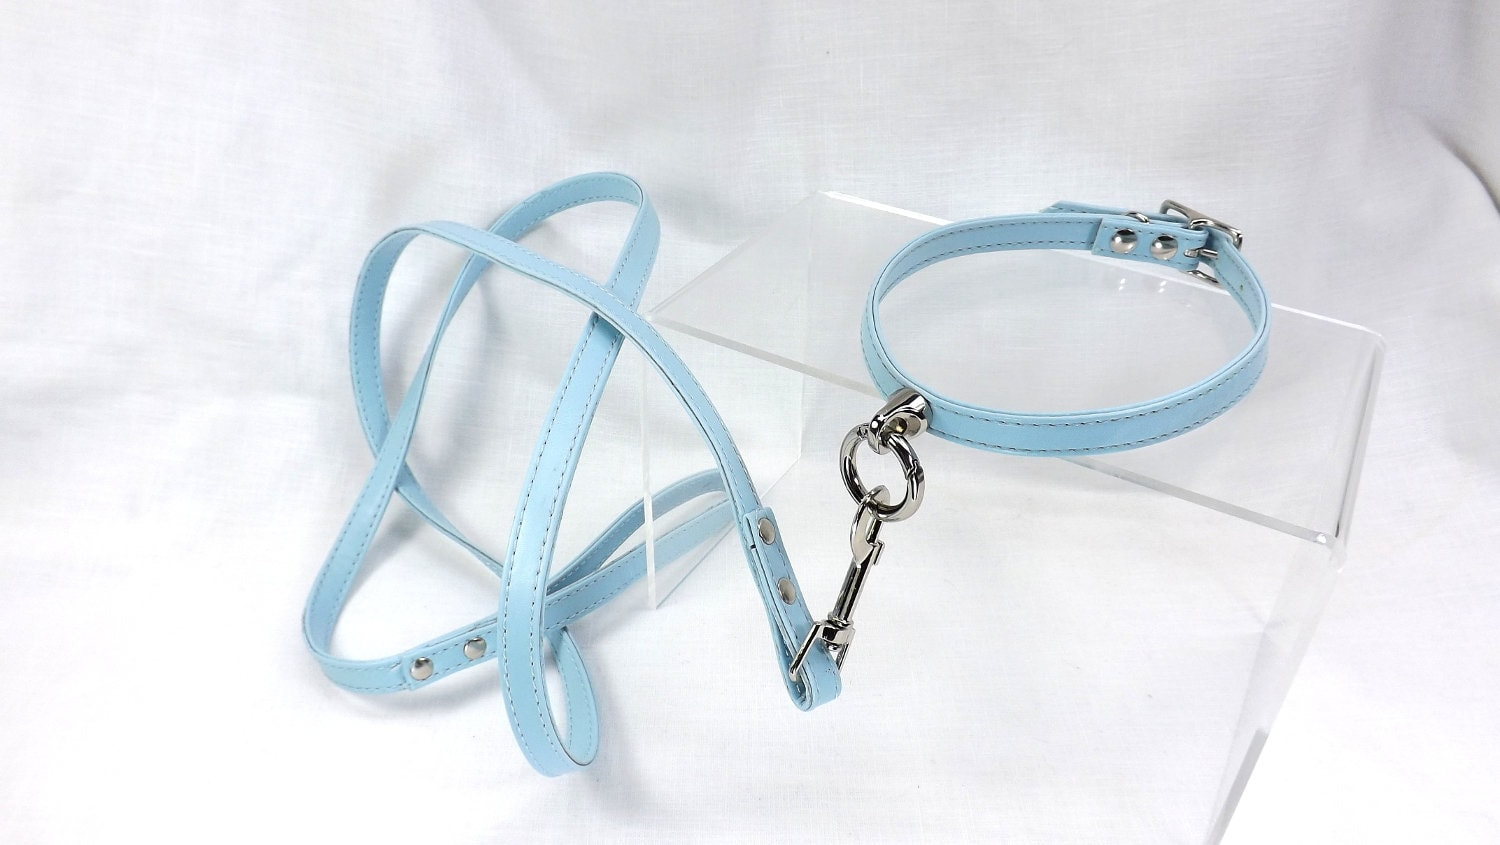 O ring Day Collar with leash slave Collar kitten play collar ddlg bdsm day collar and leash set - product images  of